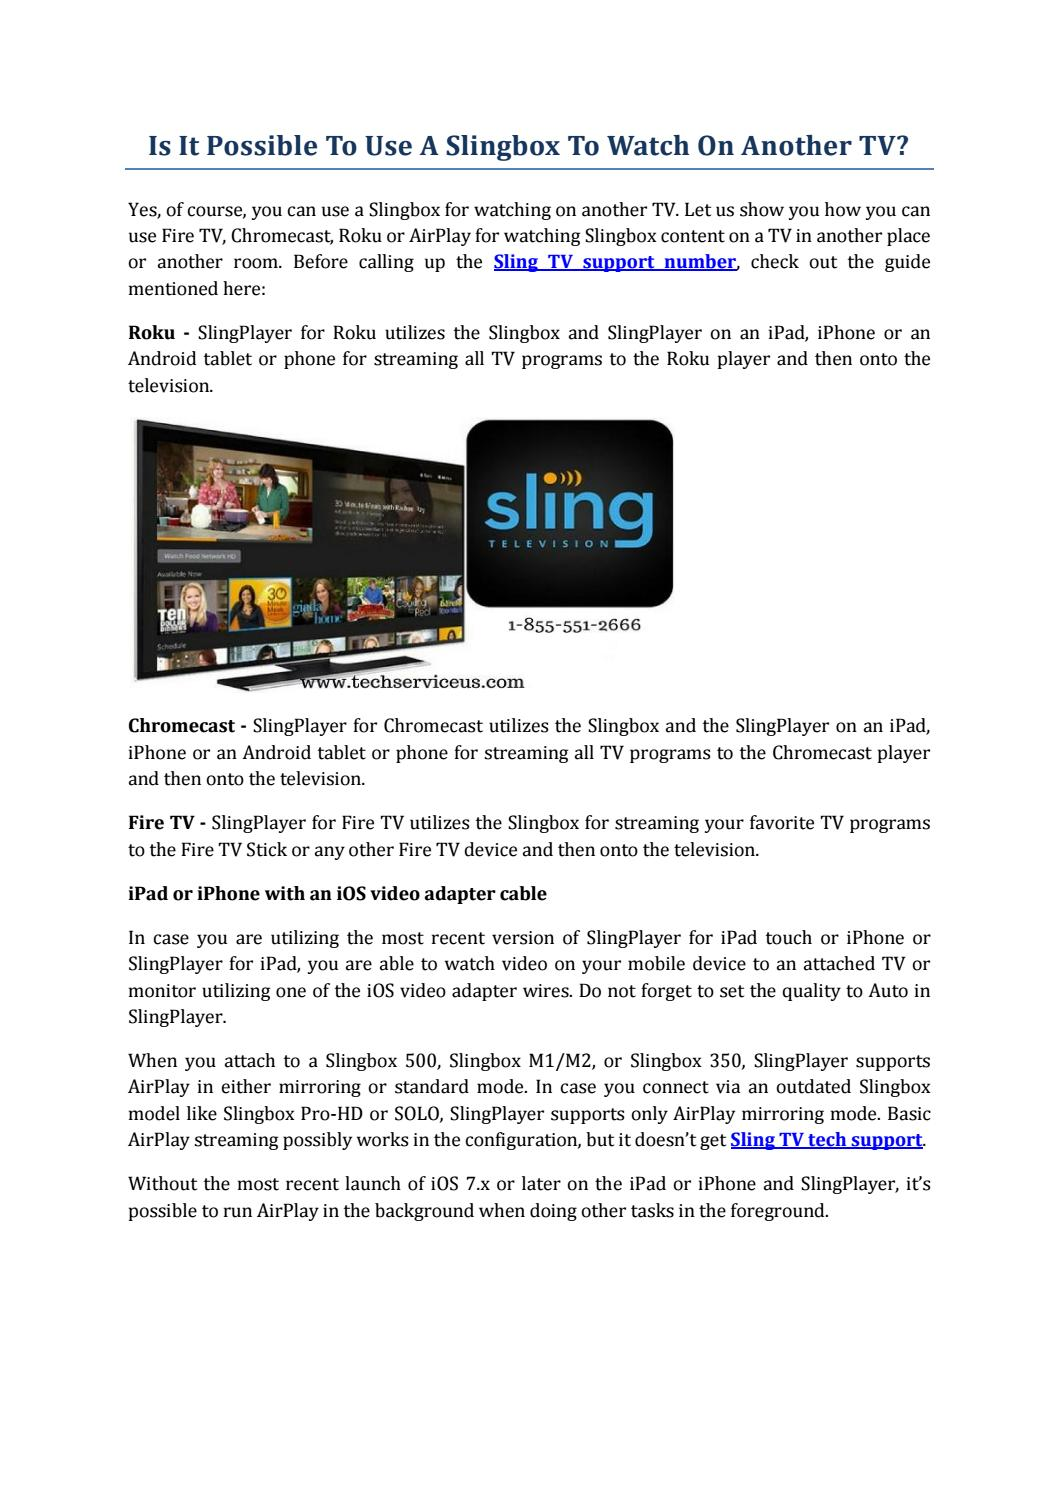 Is It Possible To Use Slingbox To Watch On Another TV? by